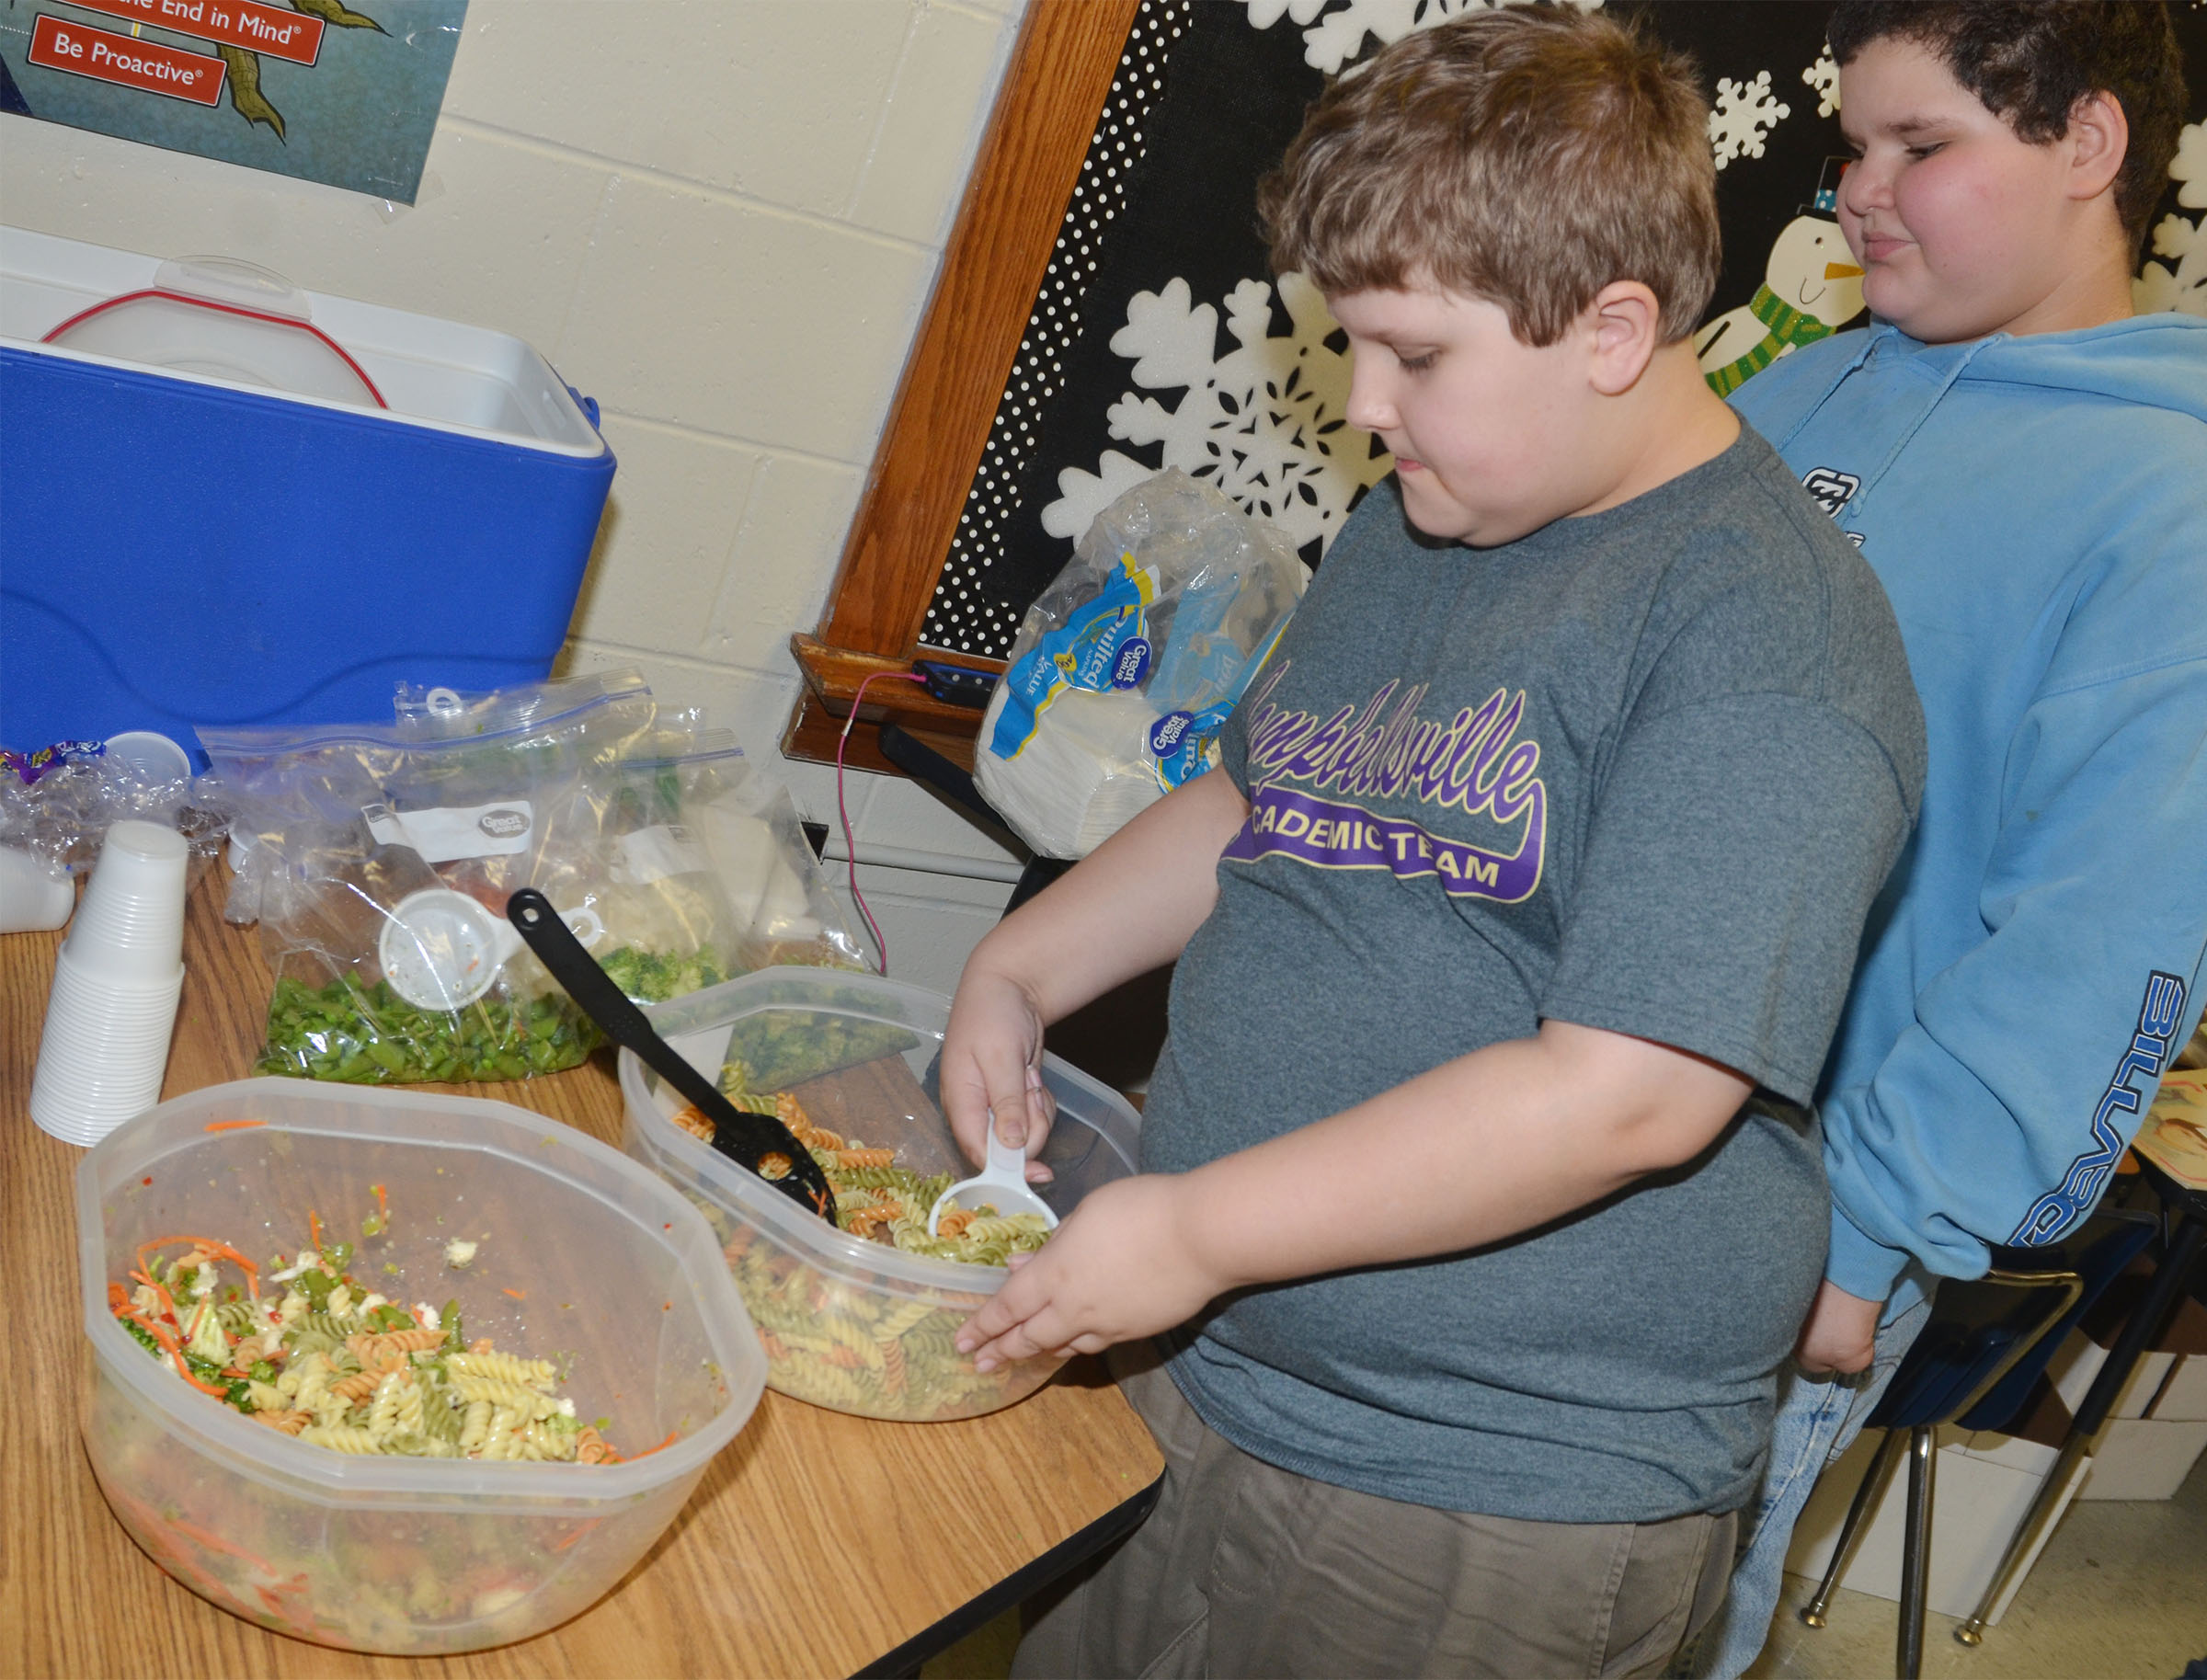 CMS fourth-grader Zeke Harris adds noodles to the class's pasta salad, as Steven Miller waits his turn.